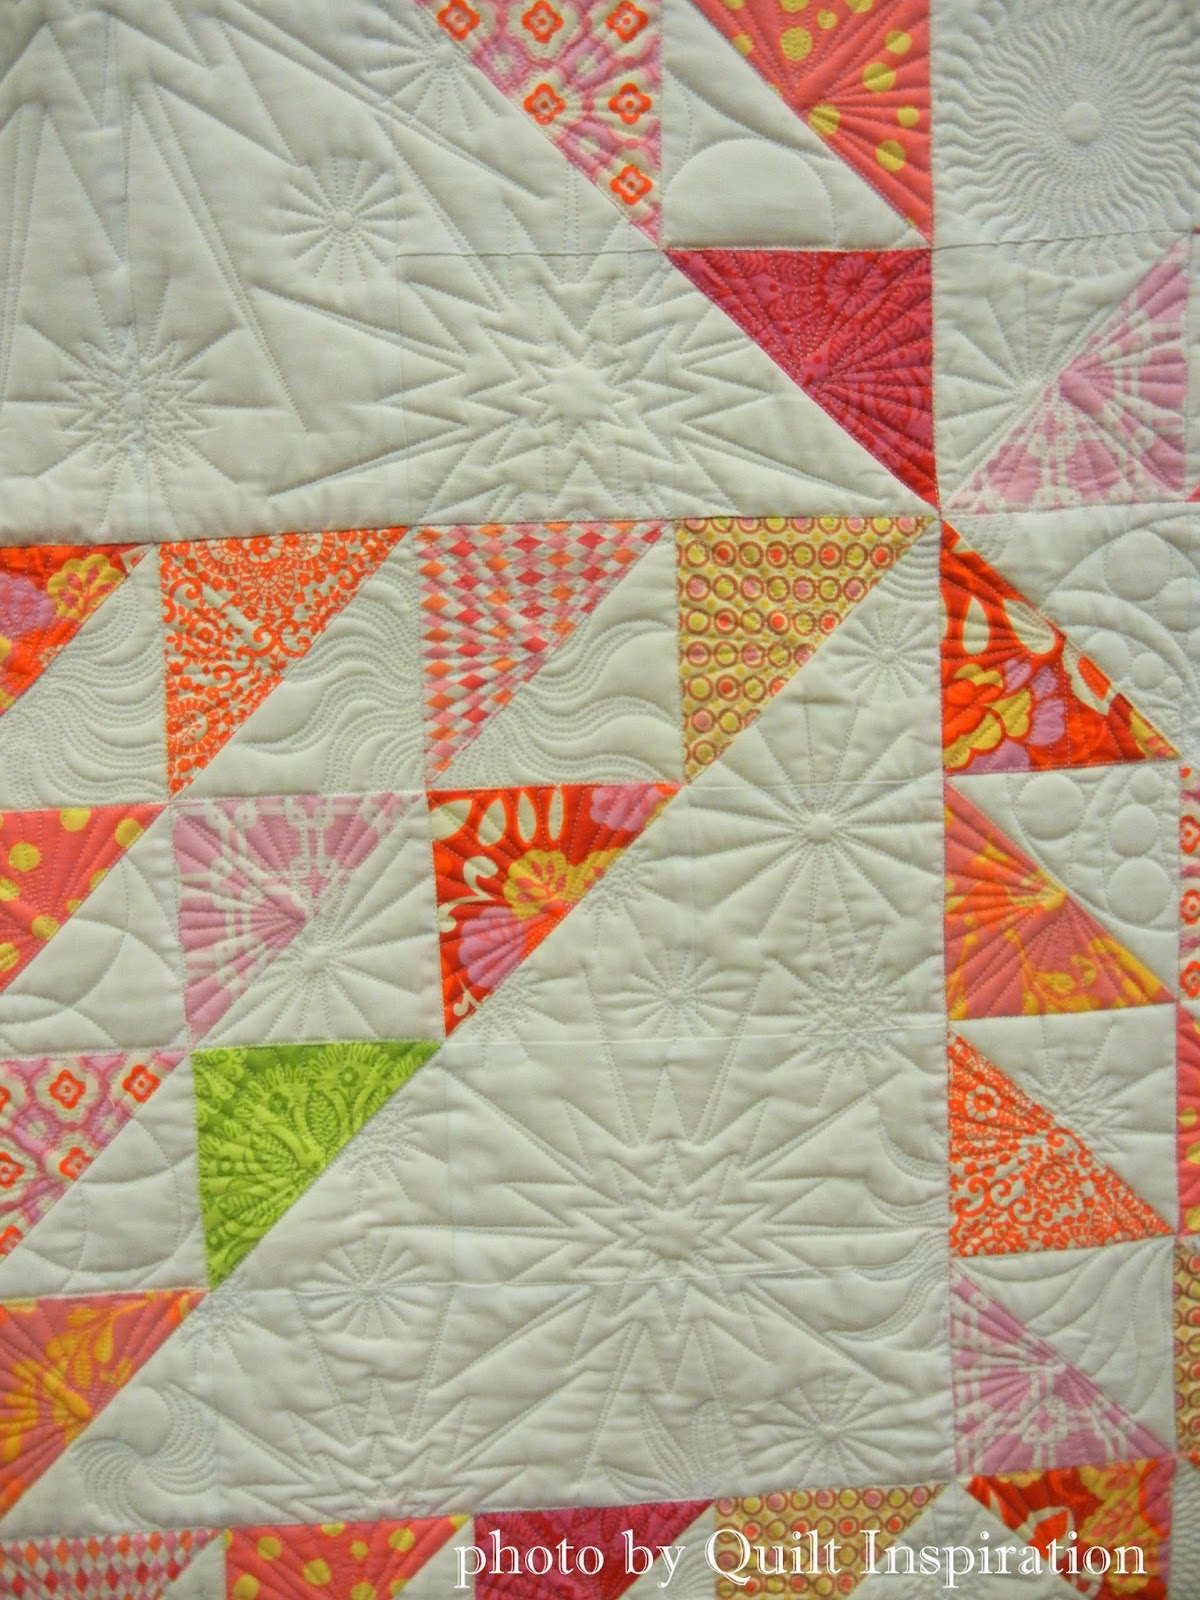 Quilt Inspiration Exemplary Quilting In Arizona